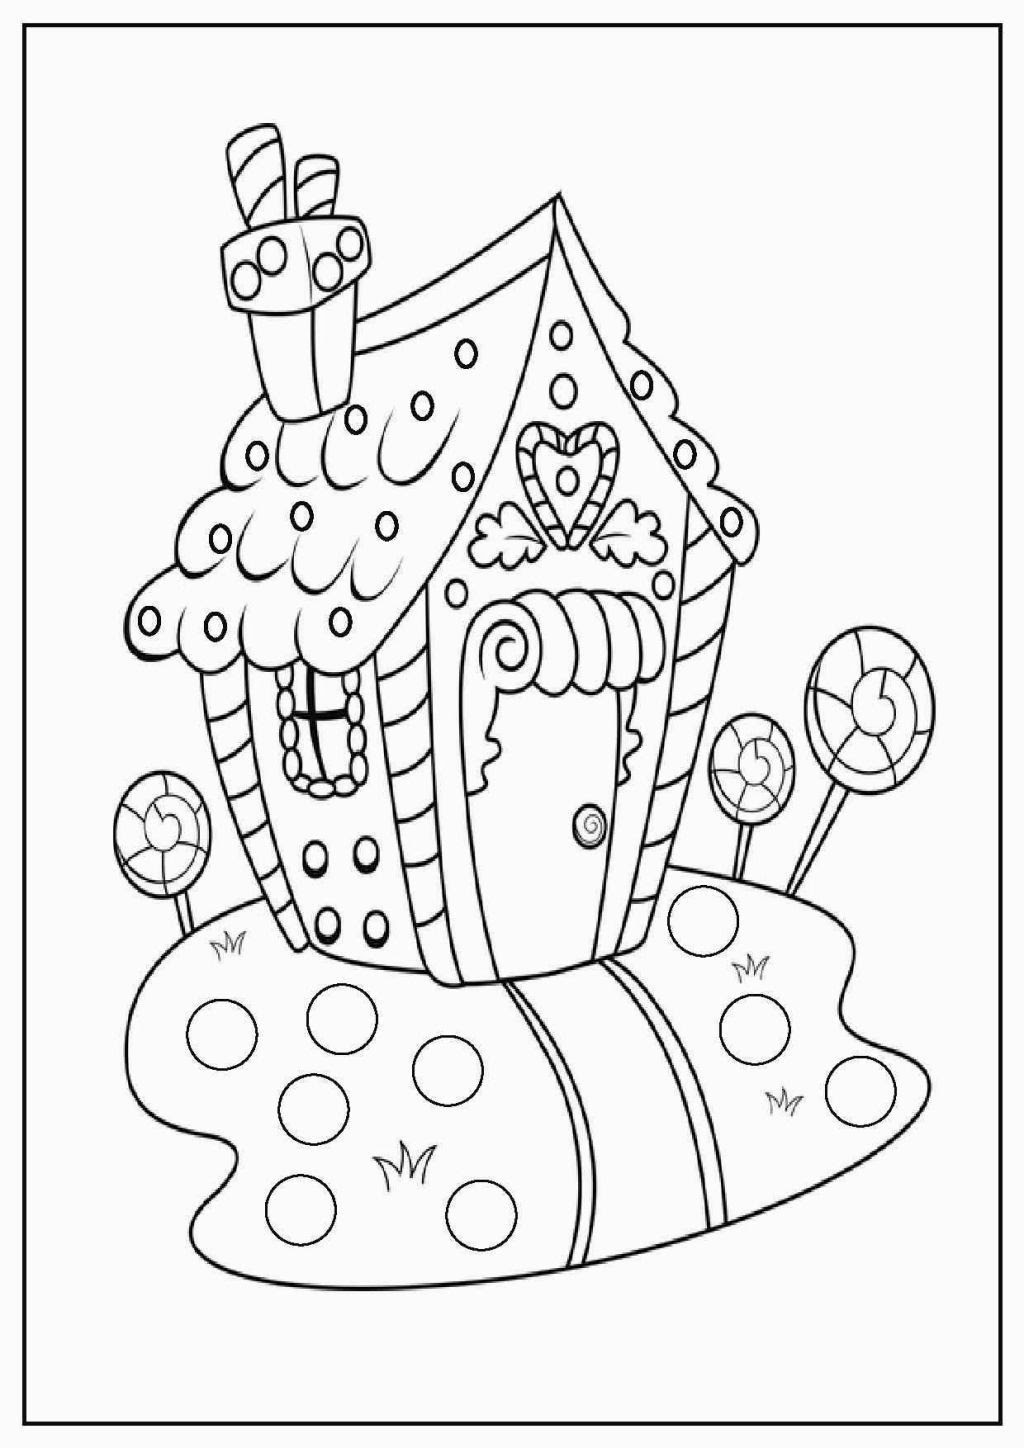 Twas The Night Before Christmas Printable Coloring Pages ...